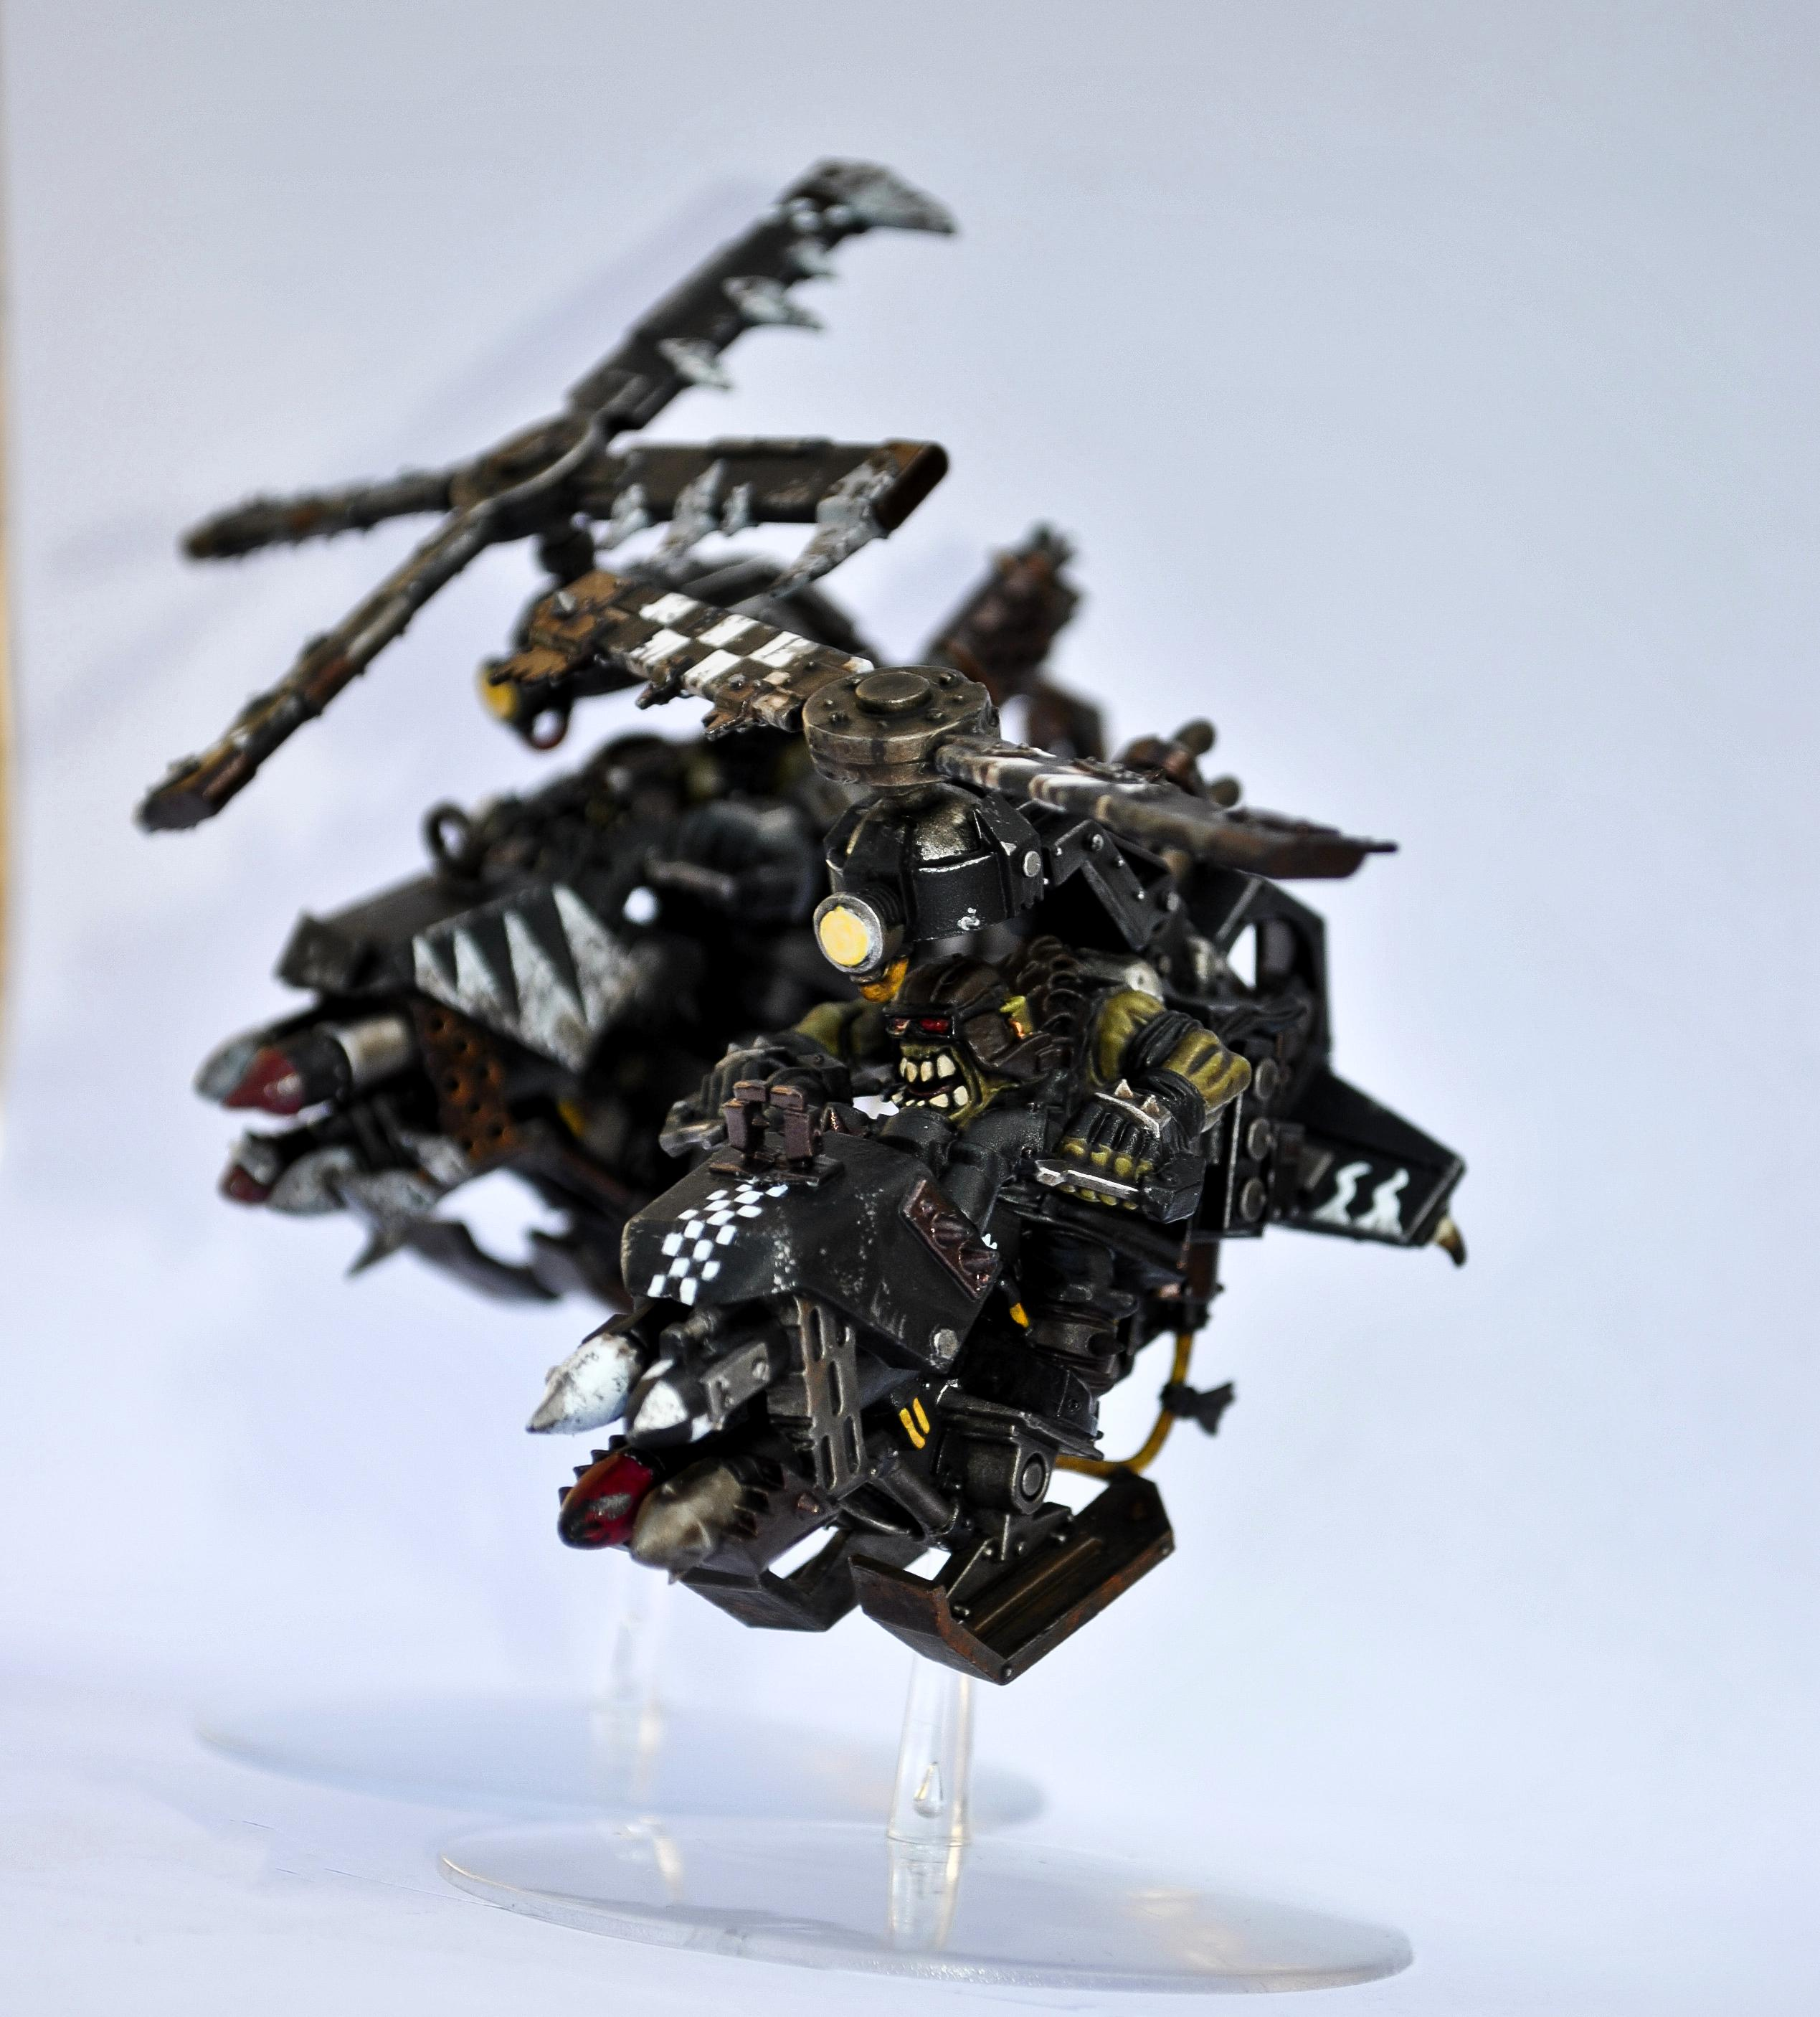 Black, Cables, Checks, Dags, Deff Dread, Deffkopta, Dirty, Flames, Freehand, Goff, Goffs, Goggles, Gorbash, Greenskins, Helicopter, Industrial, Klan, Kopta, Light, Messy, Orks, Pilot, Rokkits, Rotor, Rusty, Speedfreak, Teeth, Warhammer 40,000, White